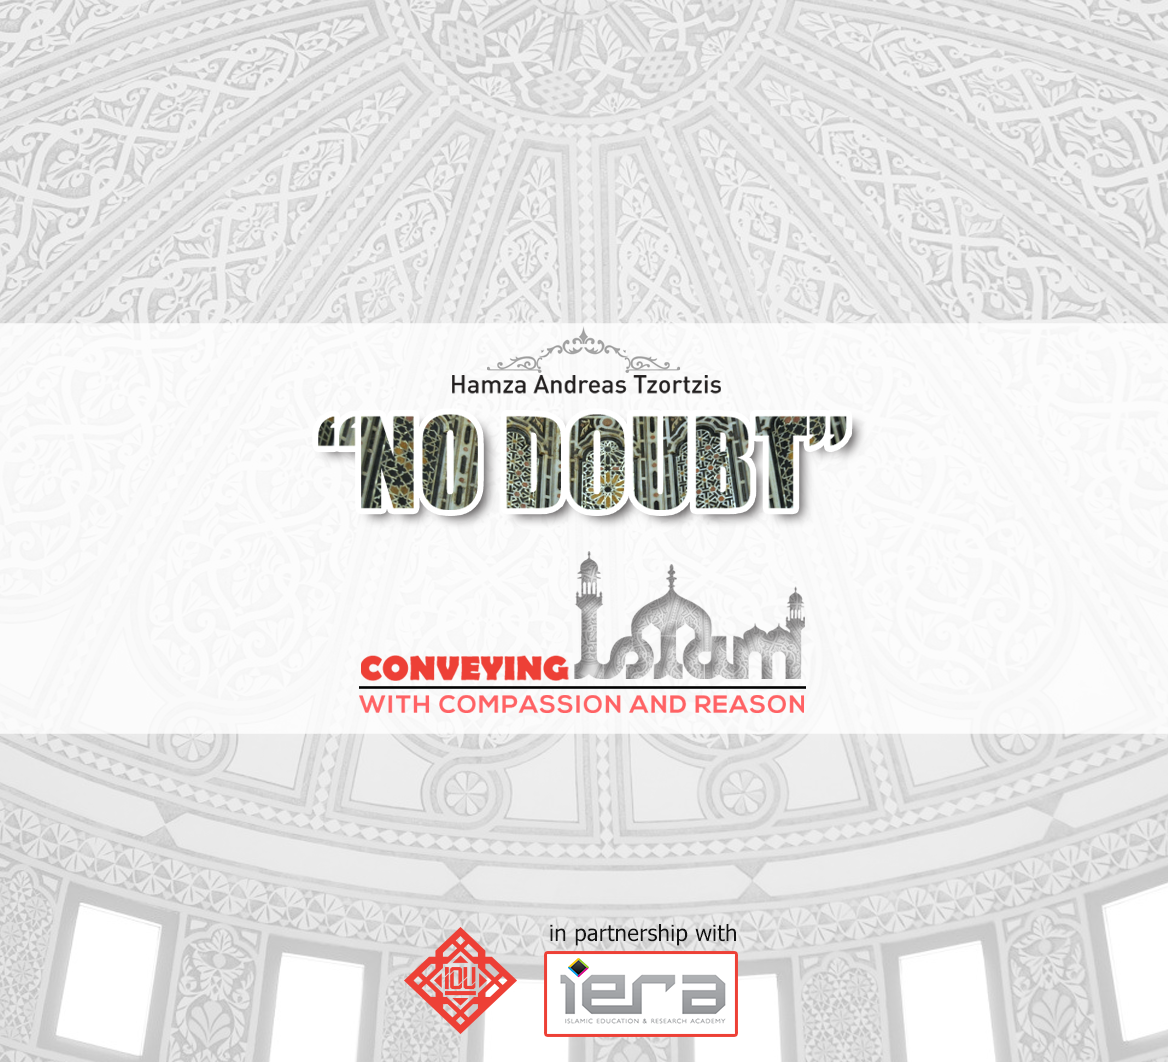 No Doubt - Conveying Islam with Compassion and Reason (DHD 100)